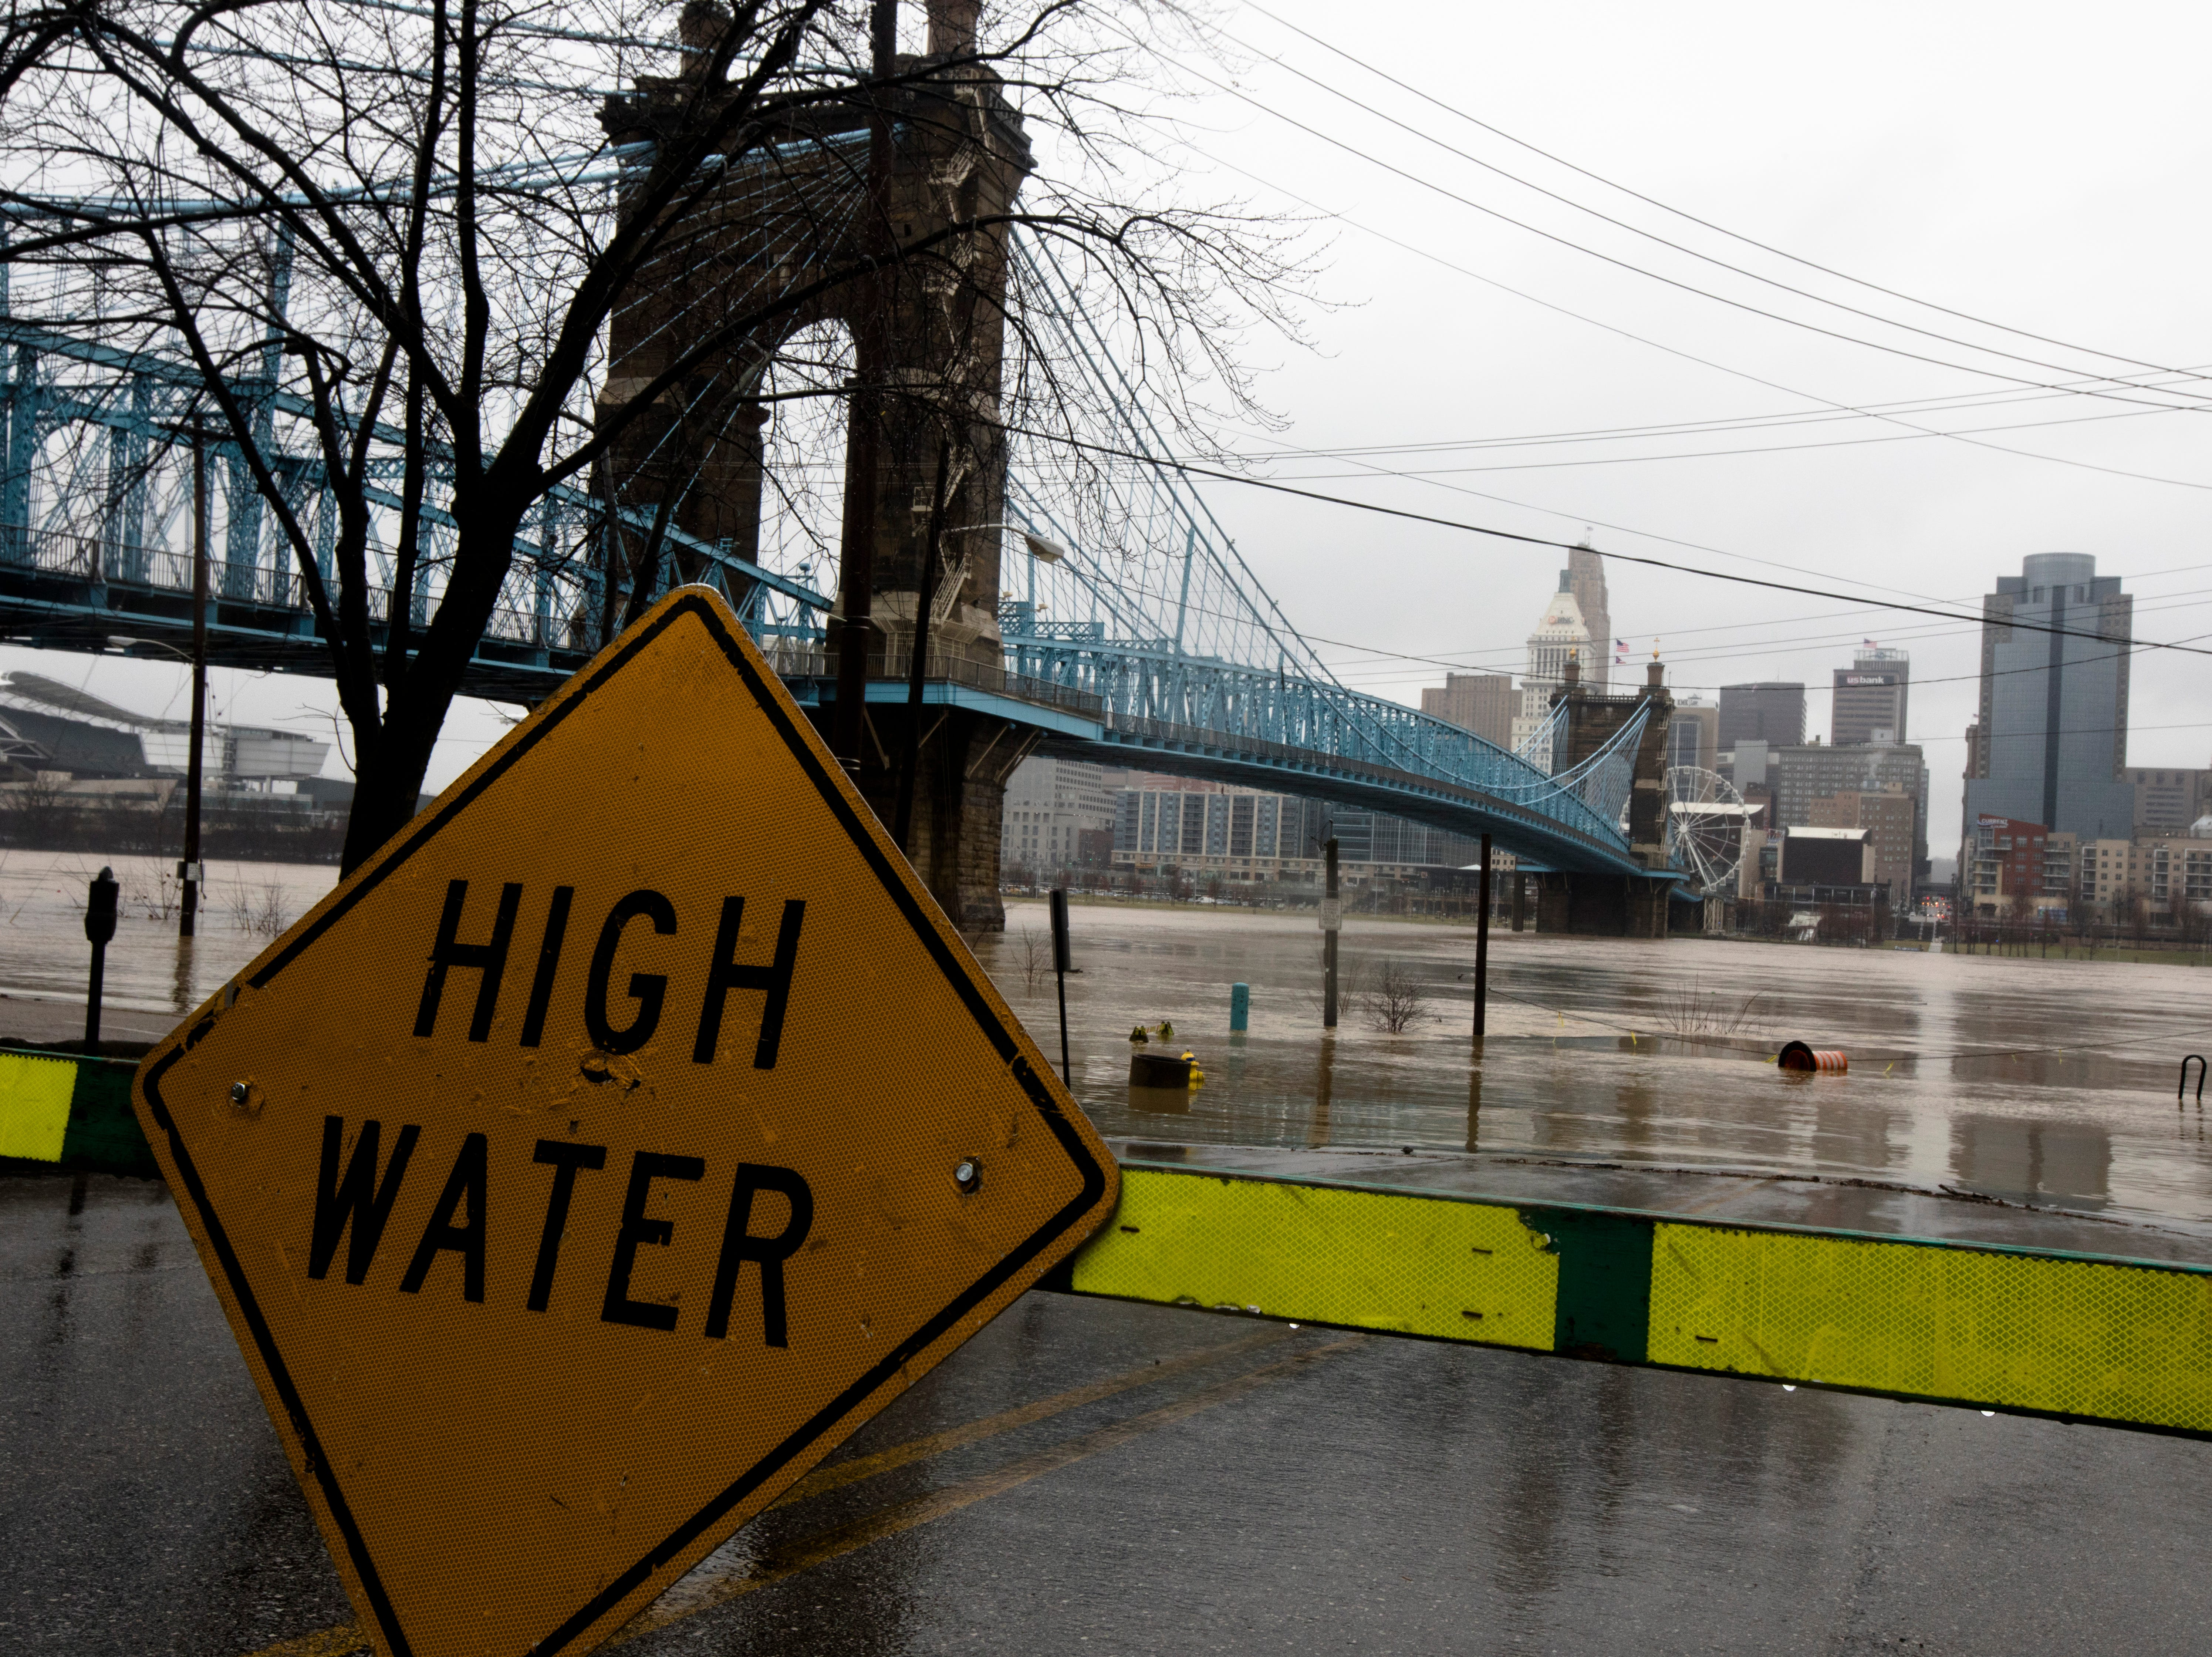 A section of River Drive in Covington is closed due to flooding on Tuesday, Feb. 12, 2019. The Ohio River is expected to crest at 56.3 feet at 1 a.m. Wednesday, Feb. 13.